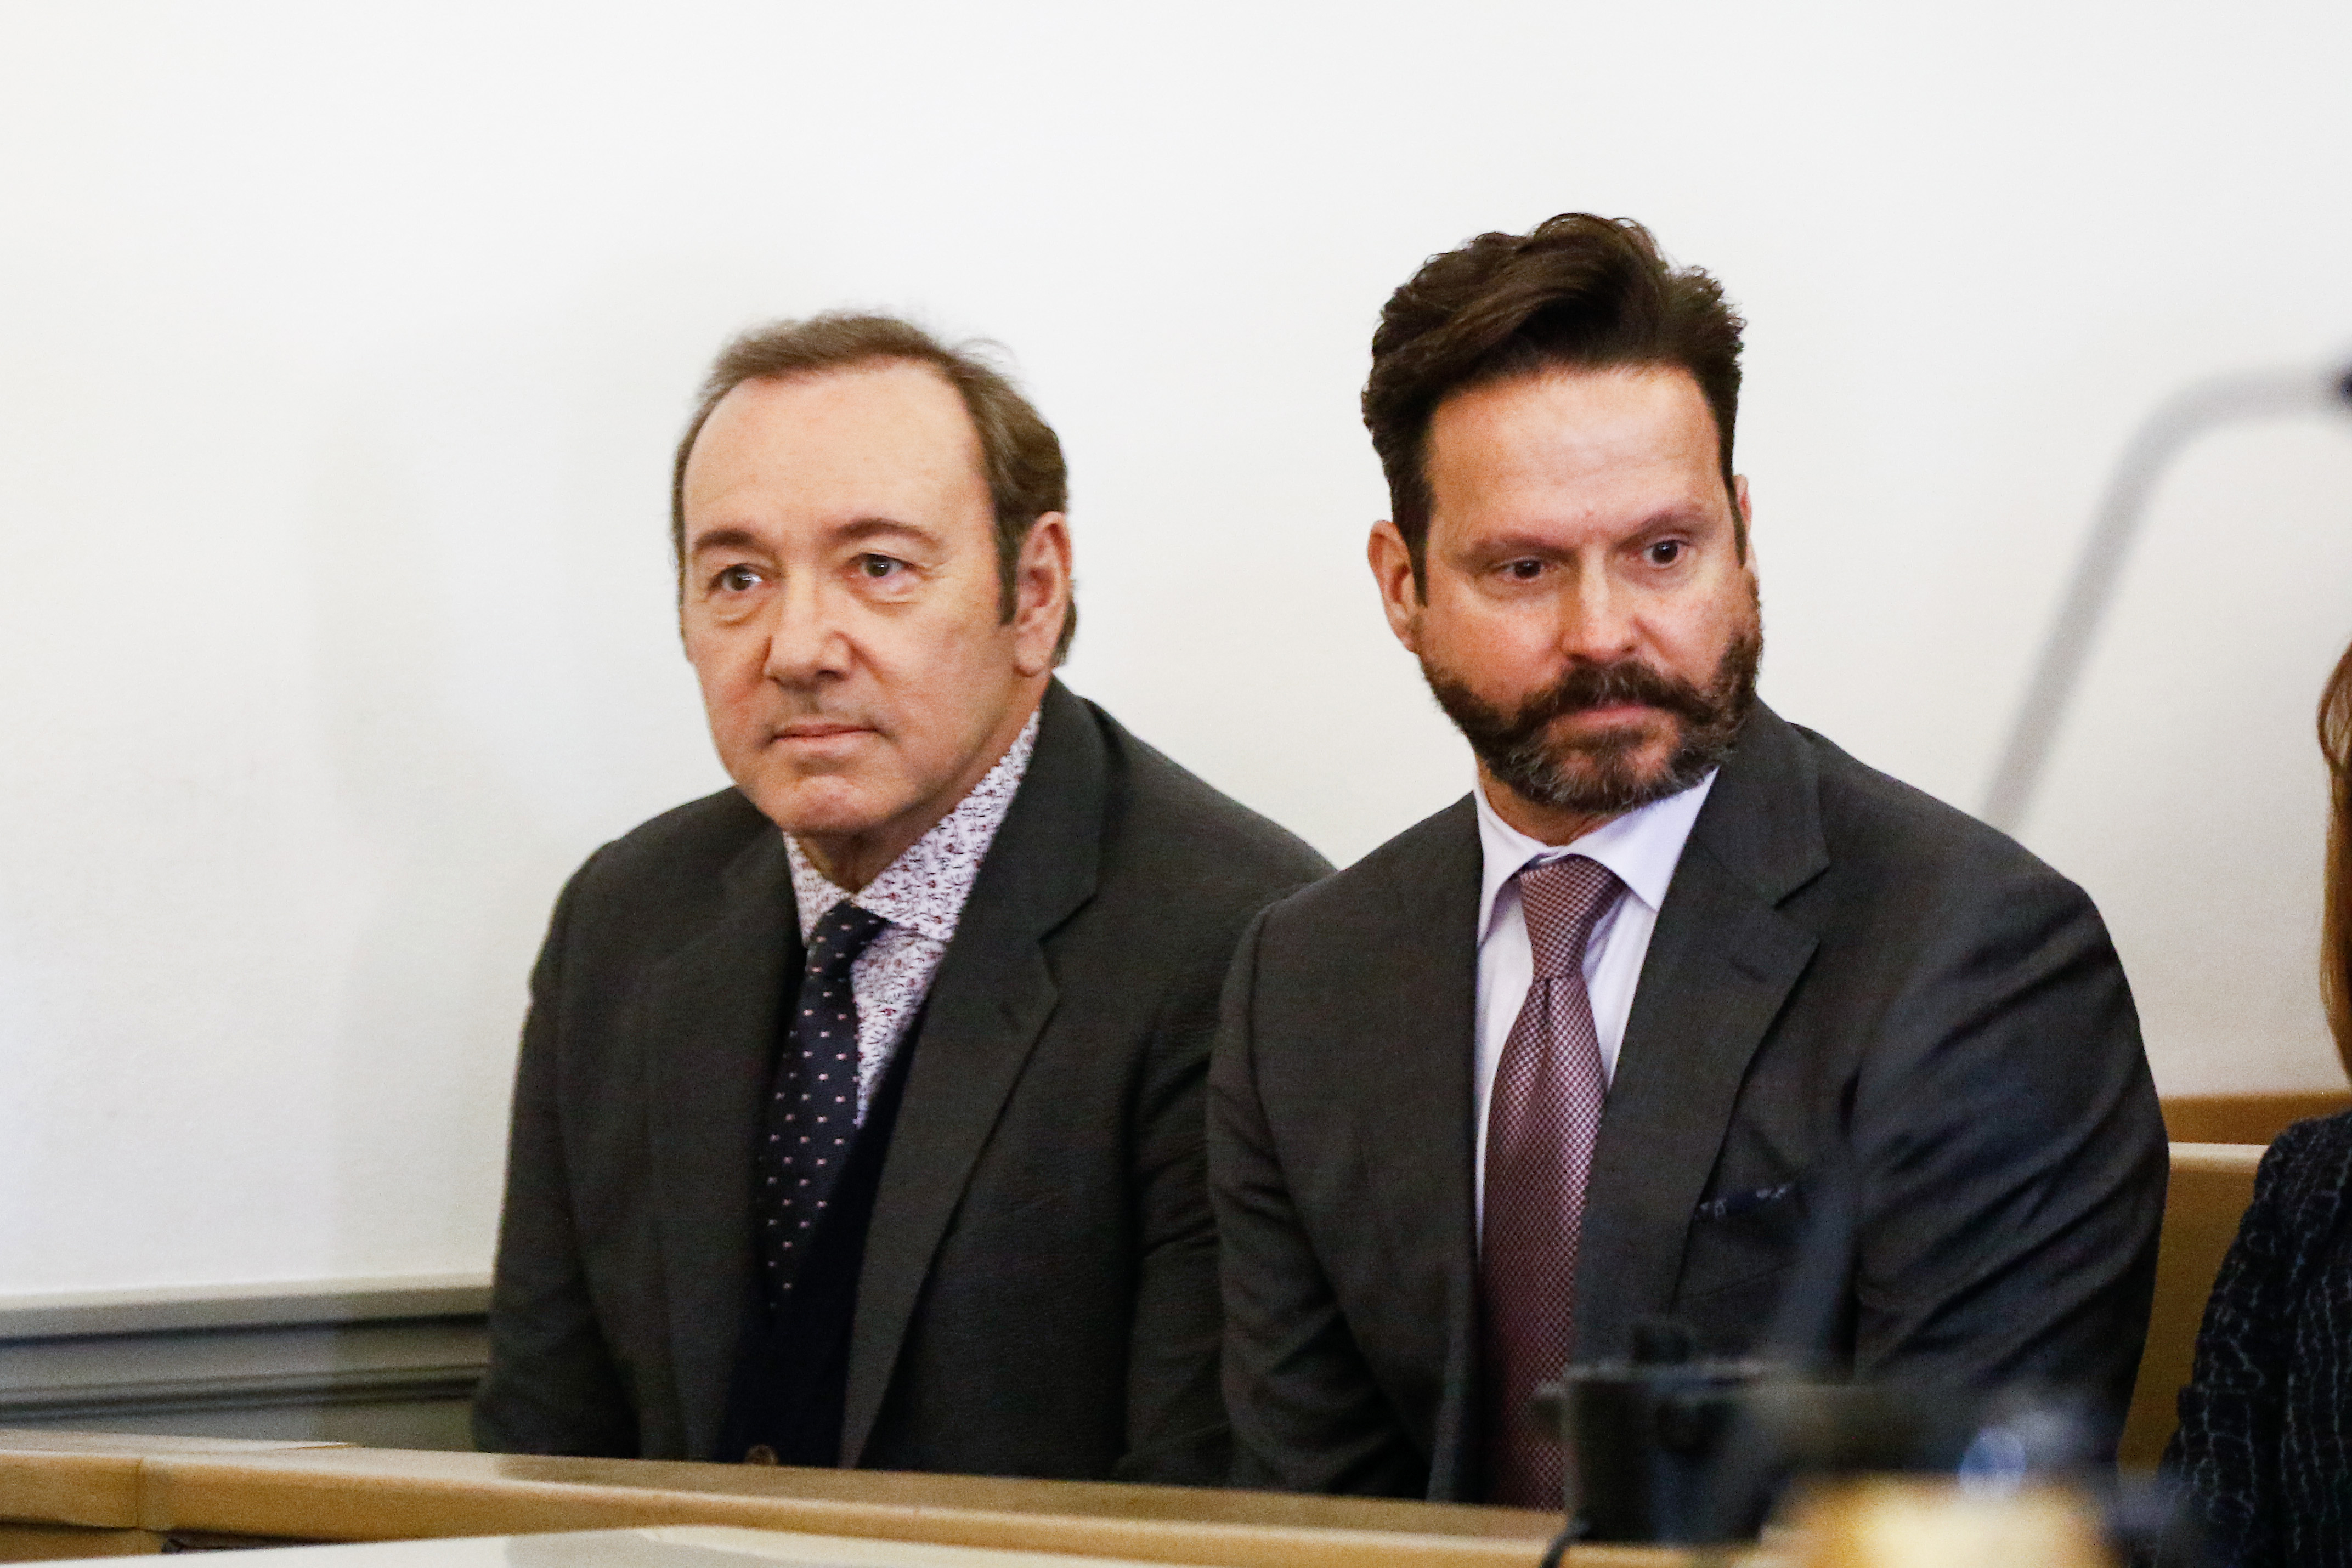 Kevin Spacey accuser drops civil case against actor; criminal case ongoing